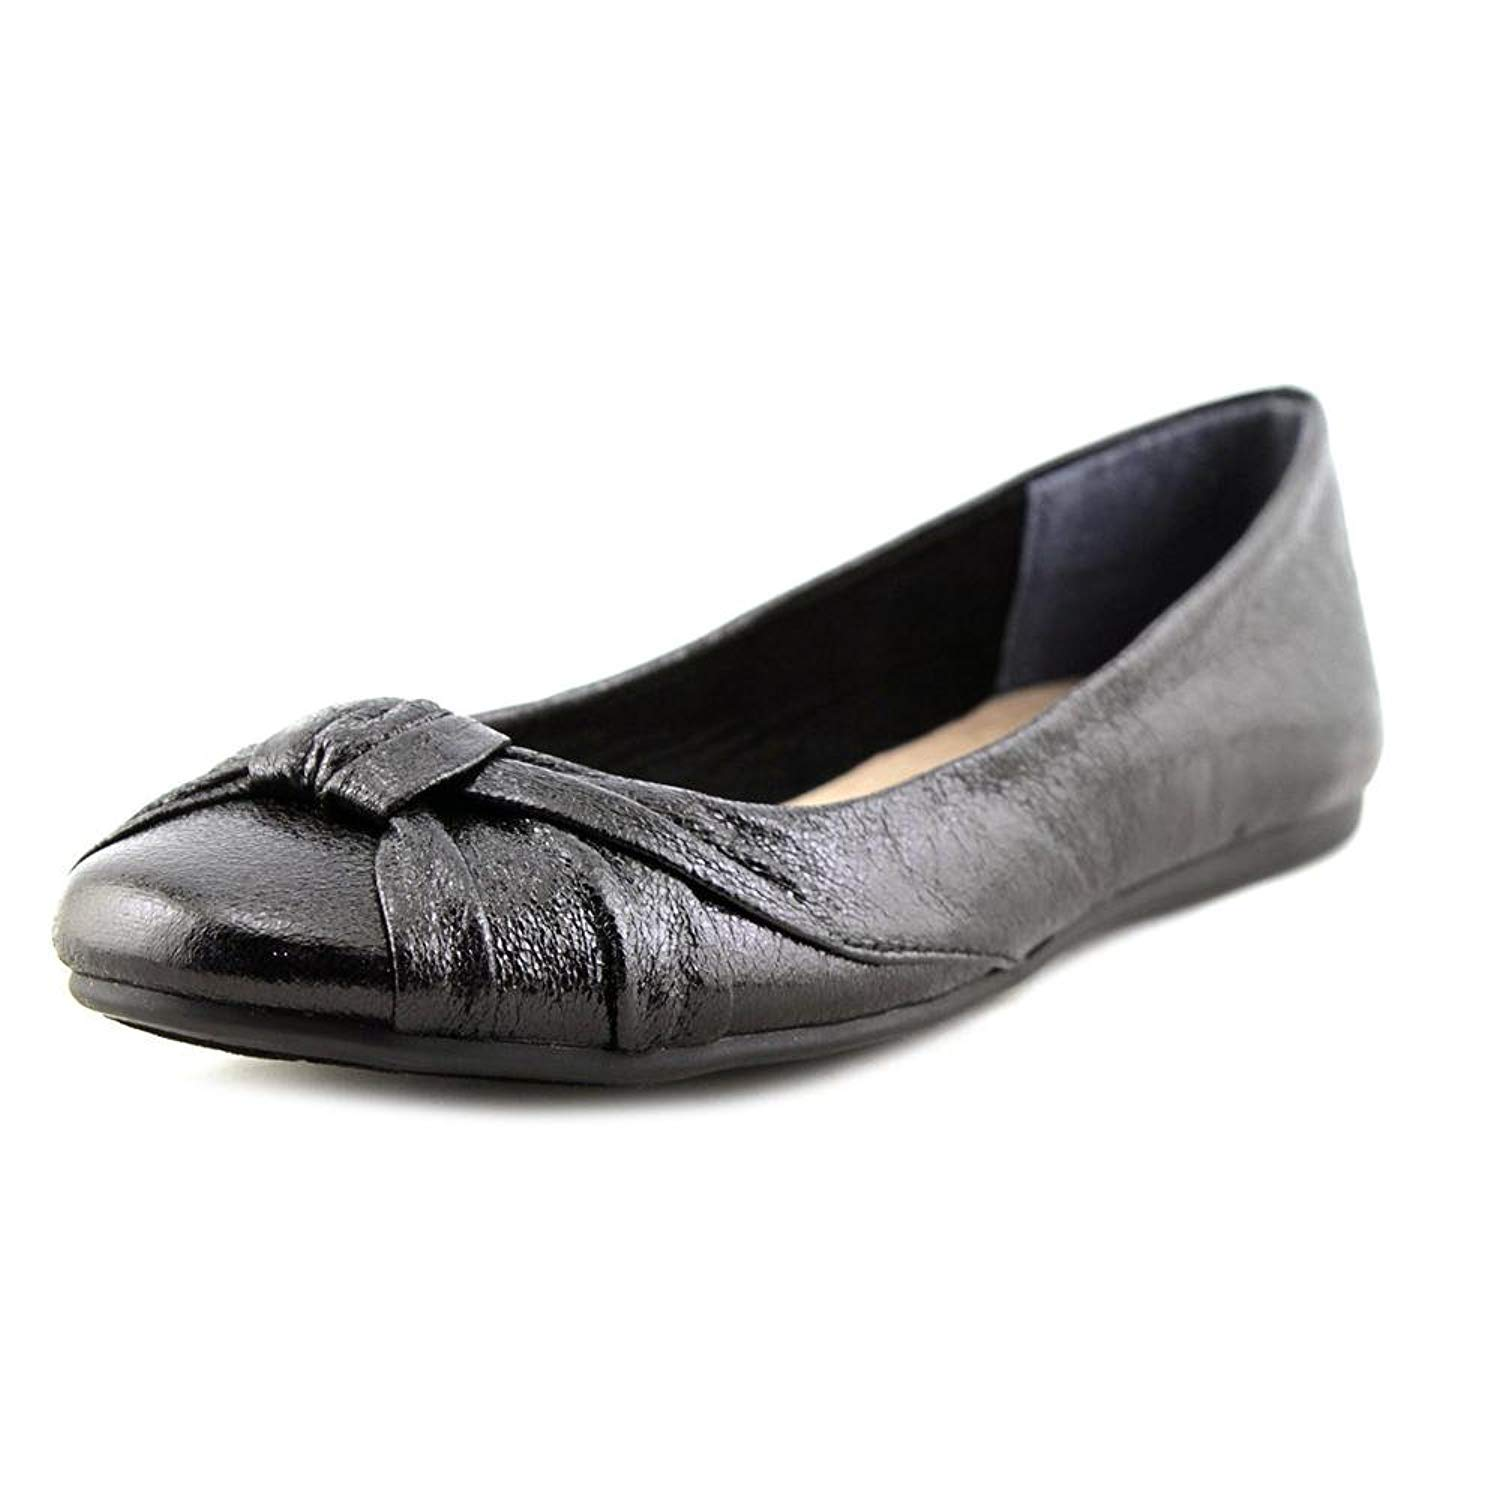 Style & Co. Womens Audreyy Round Toe Ballet Flats, Black, Size 5.0